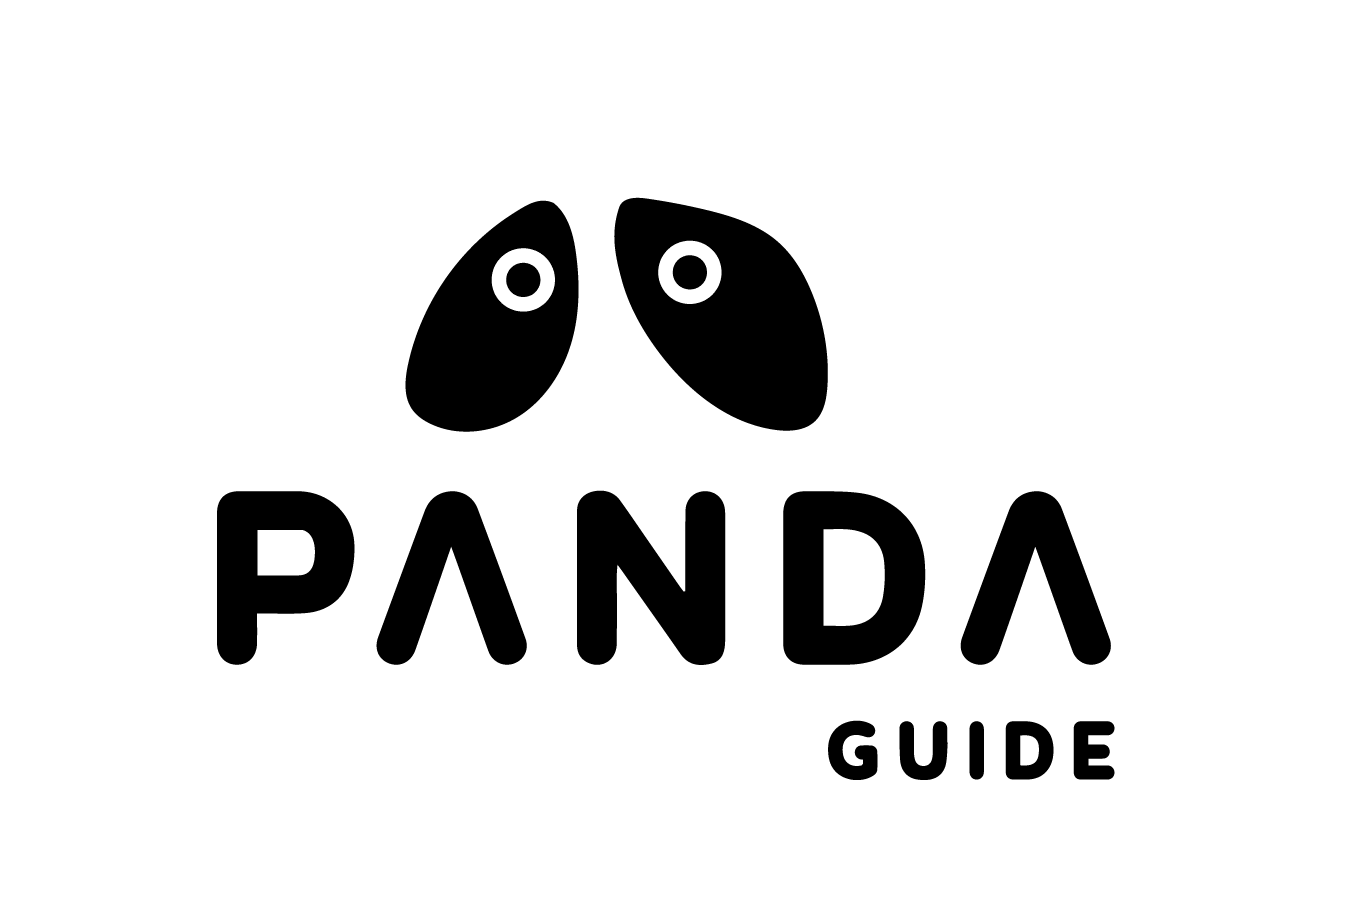 Panda text png. Guide eyes in the